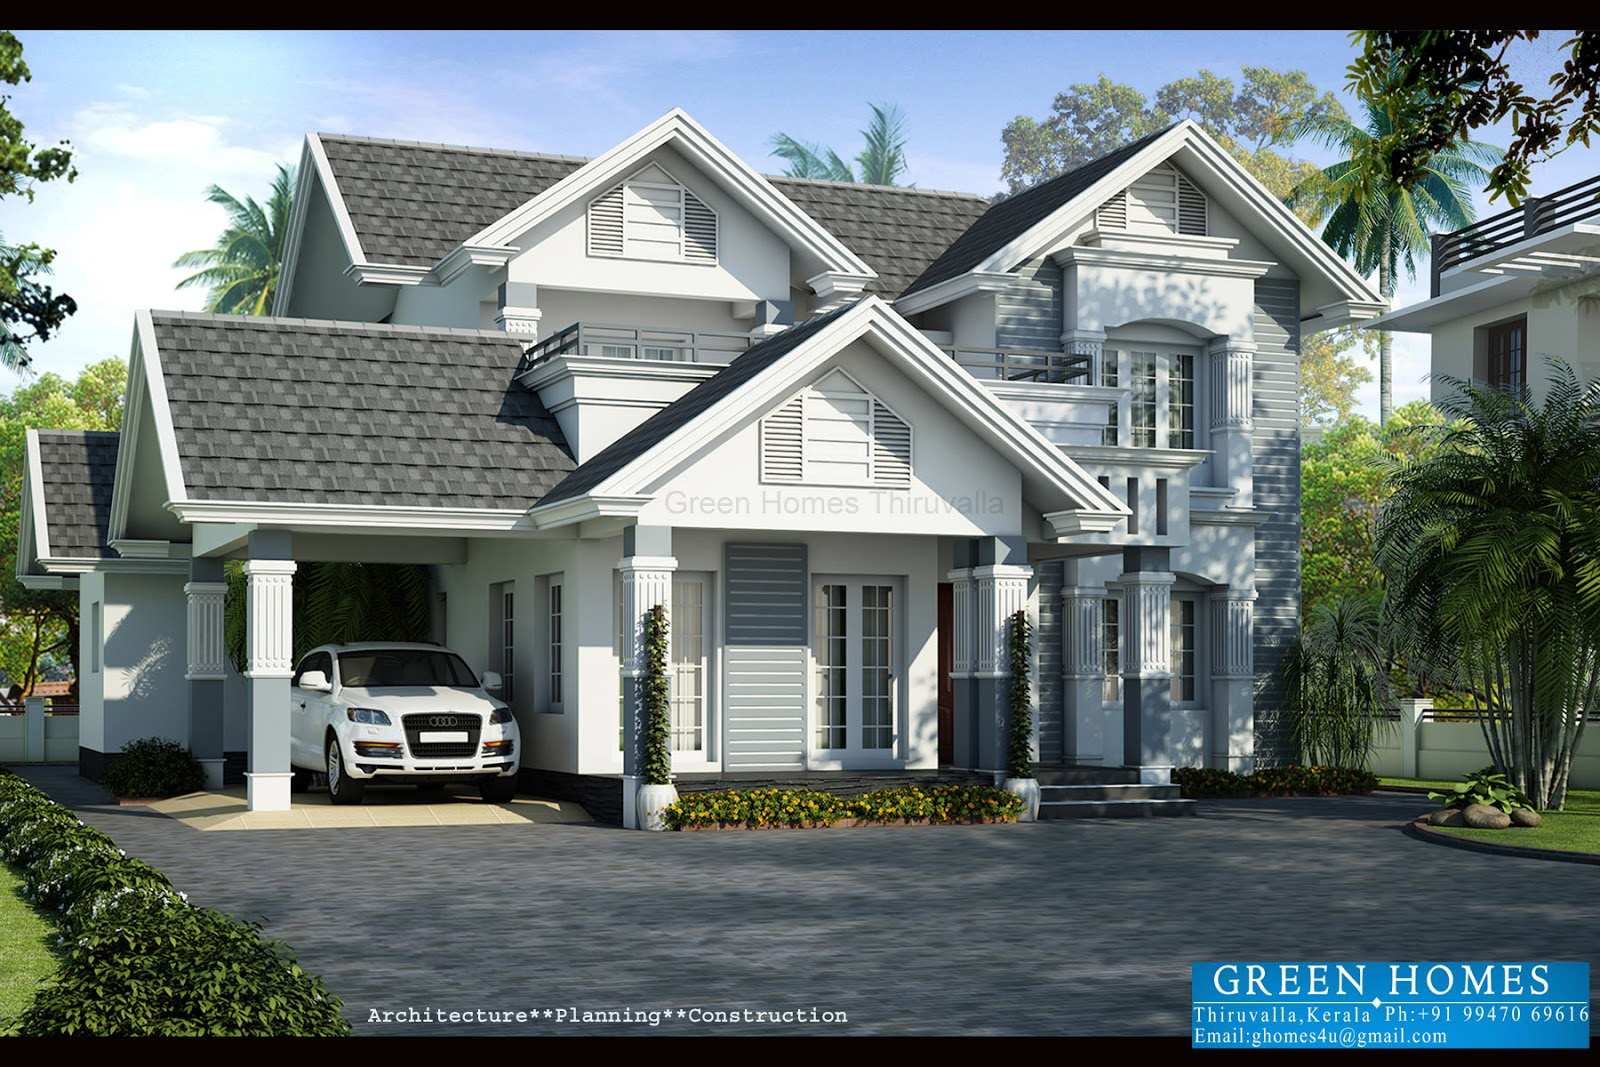 Green homes european style beautiful villa for European style house